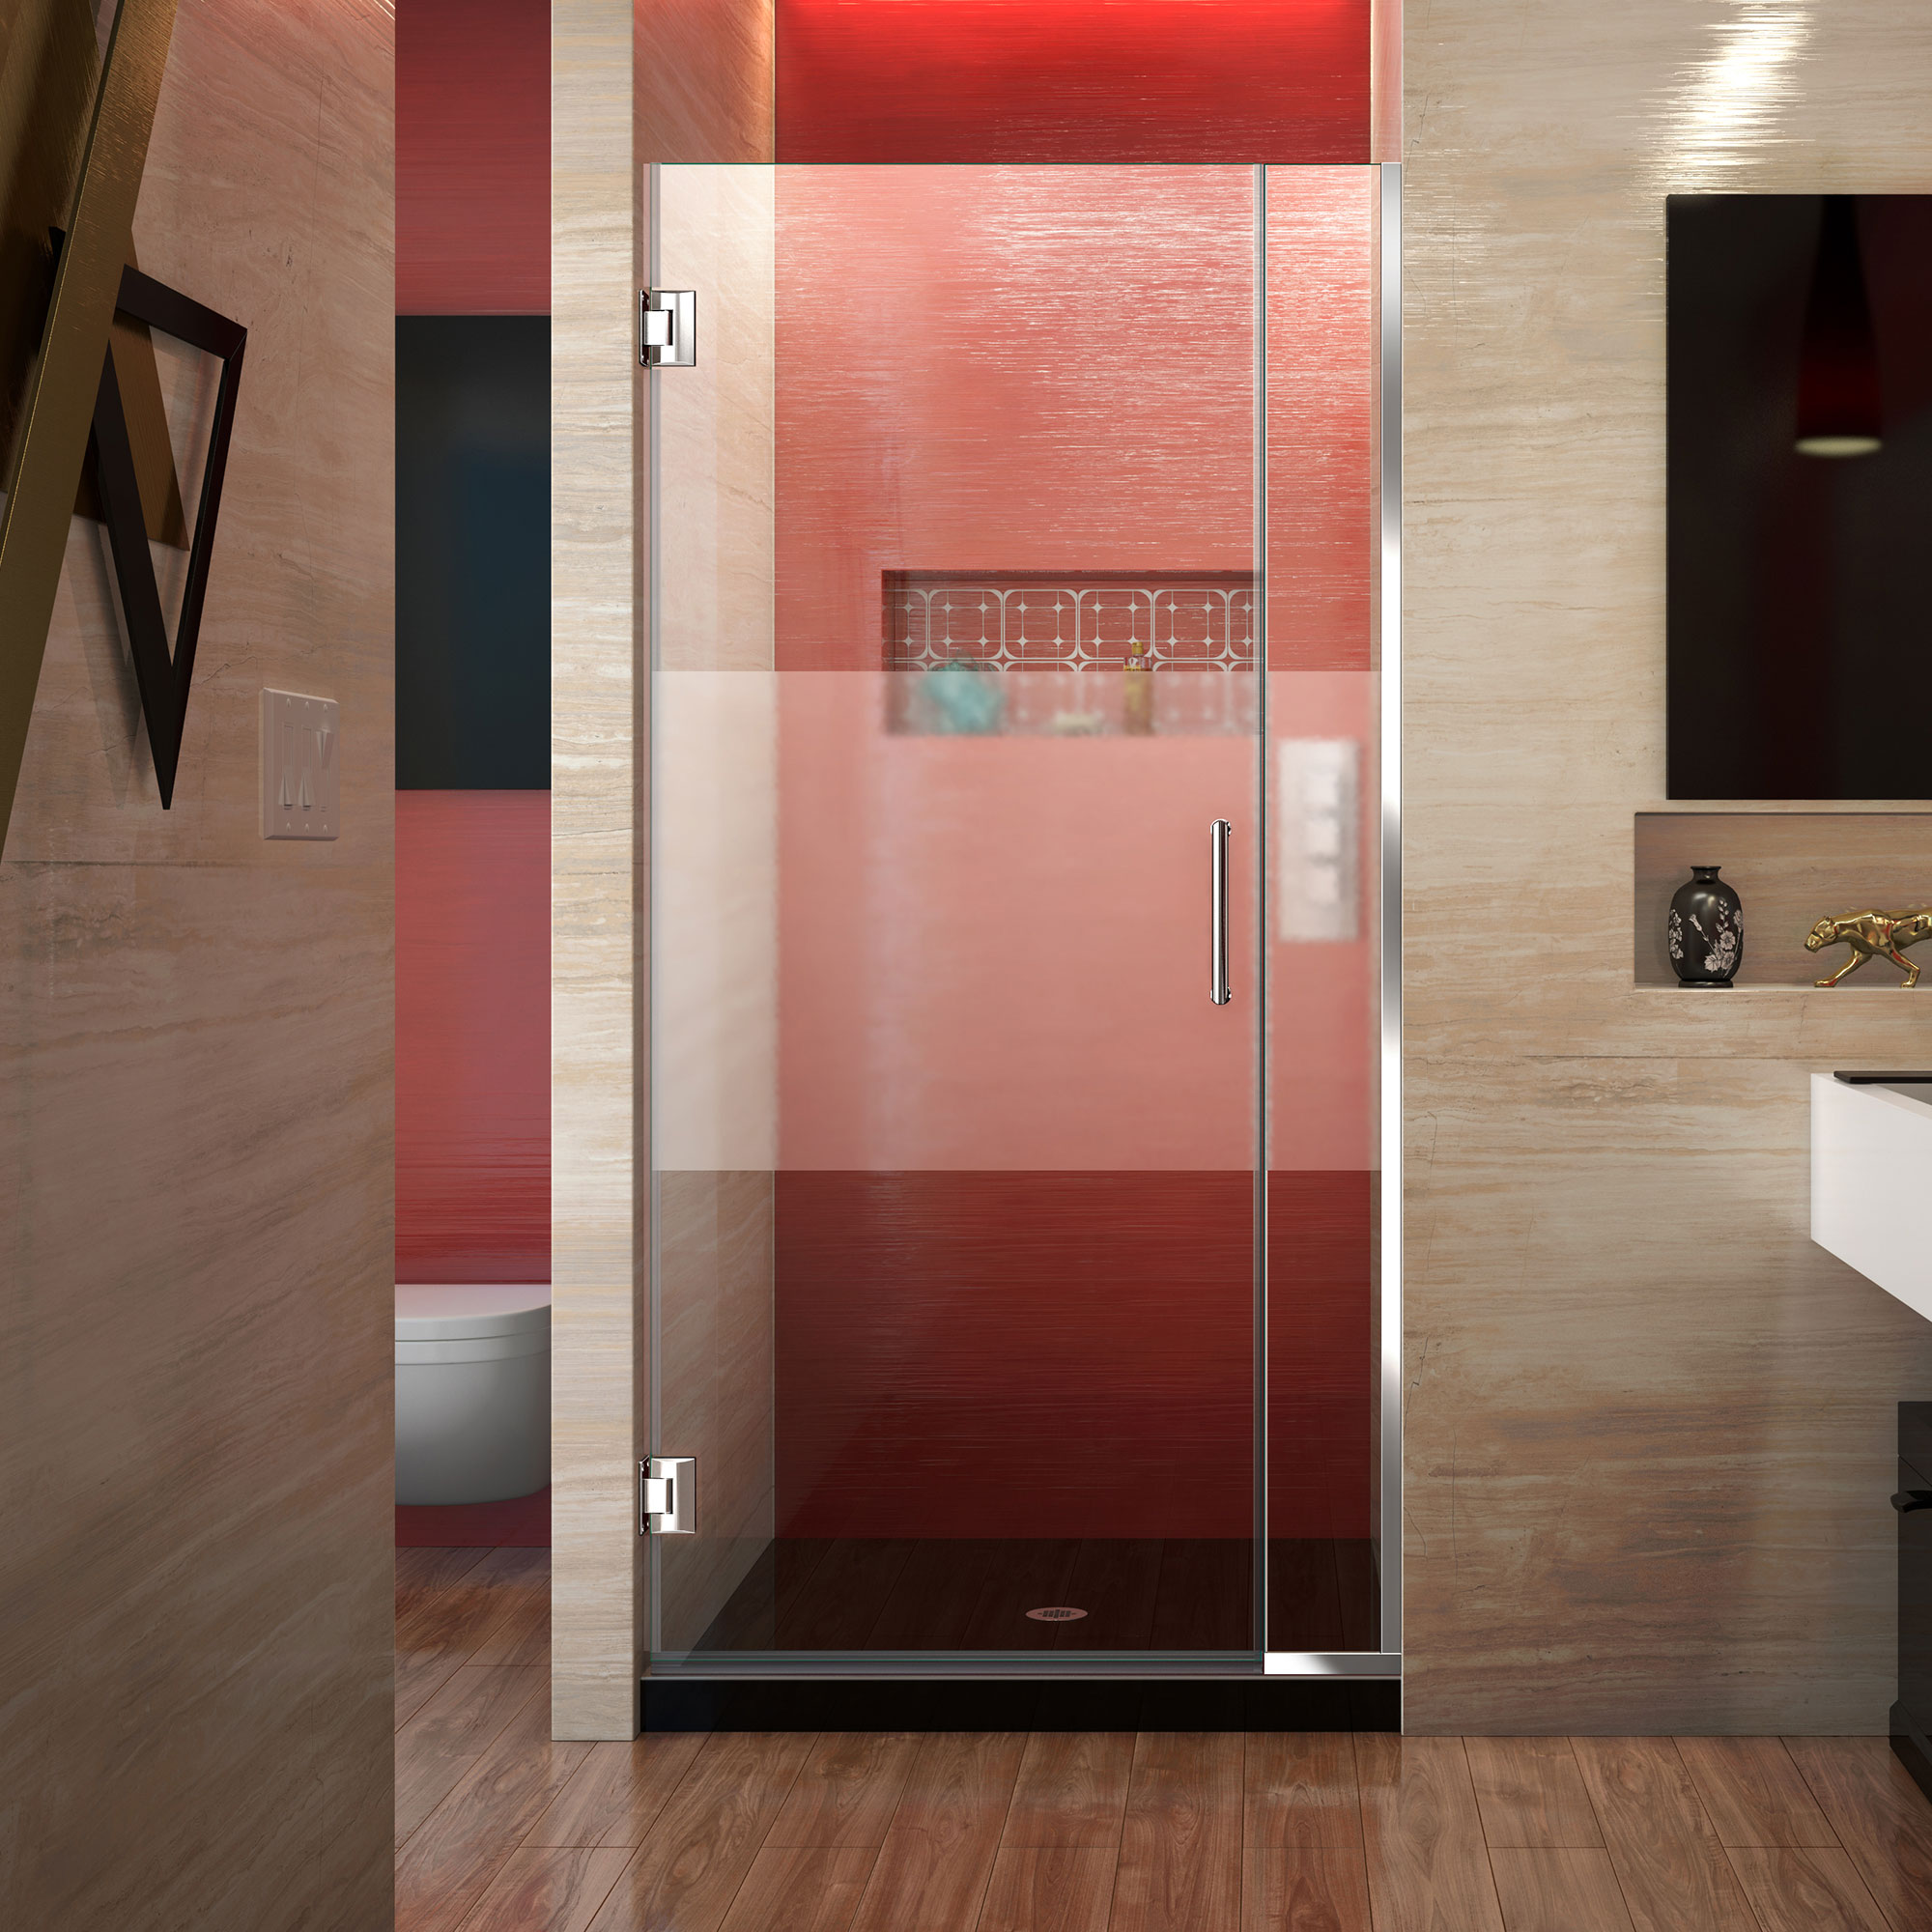 DreamLine Unidoor Plus 36-36 1/2 in. W x 72 in. H Frameless Hinged Shower Door, Frosted Band, Chrome